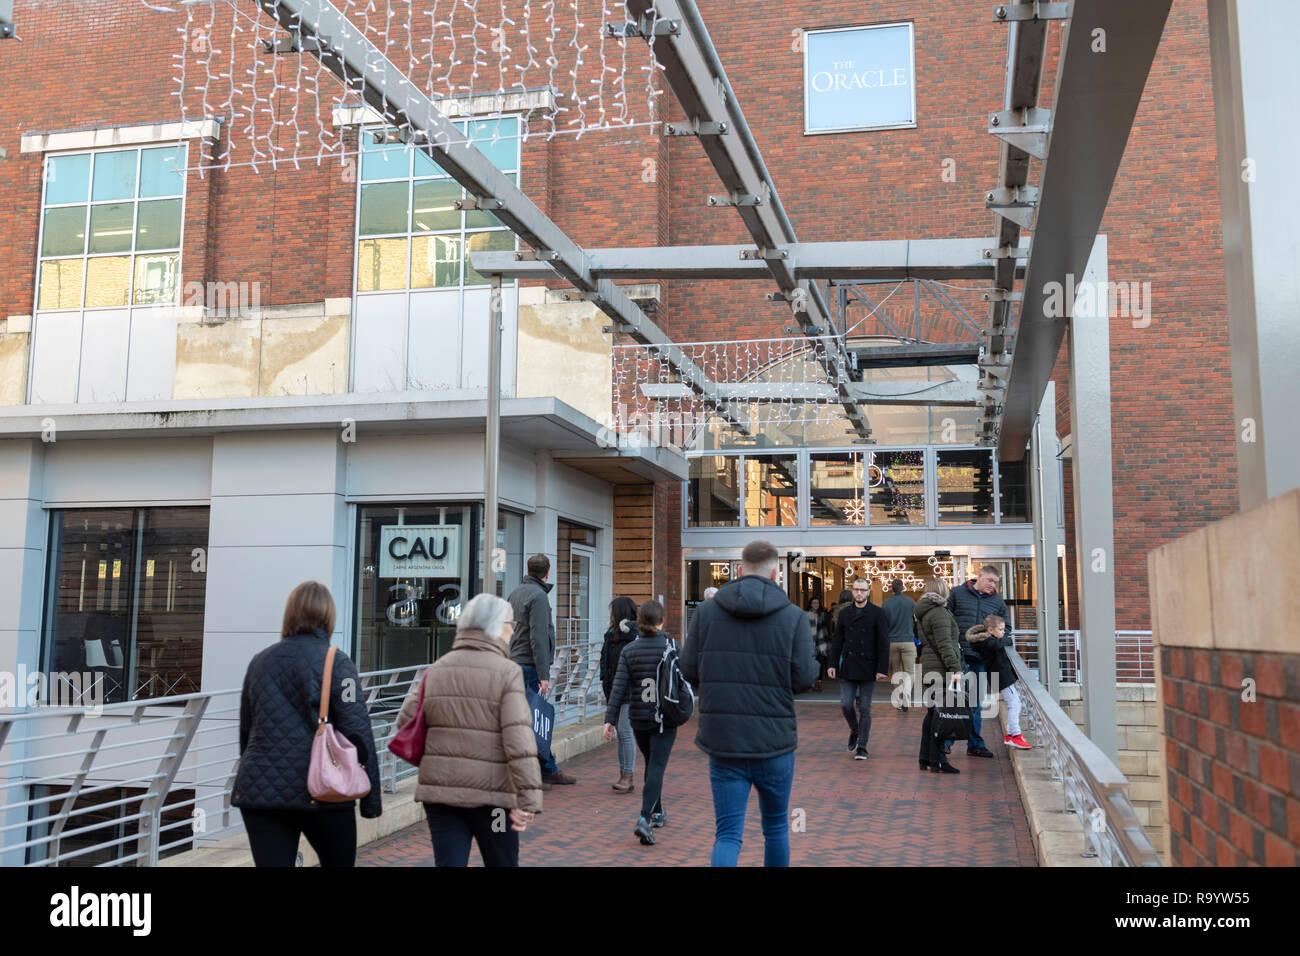 Oracle shopping centre in Reading, UK, entrance Stock Photo